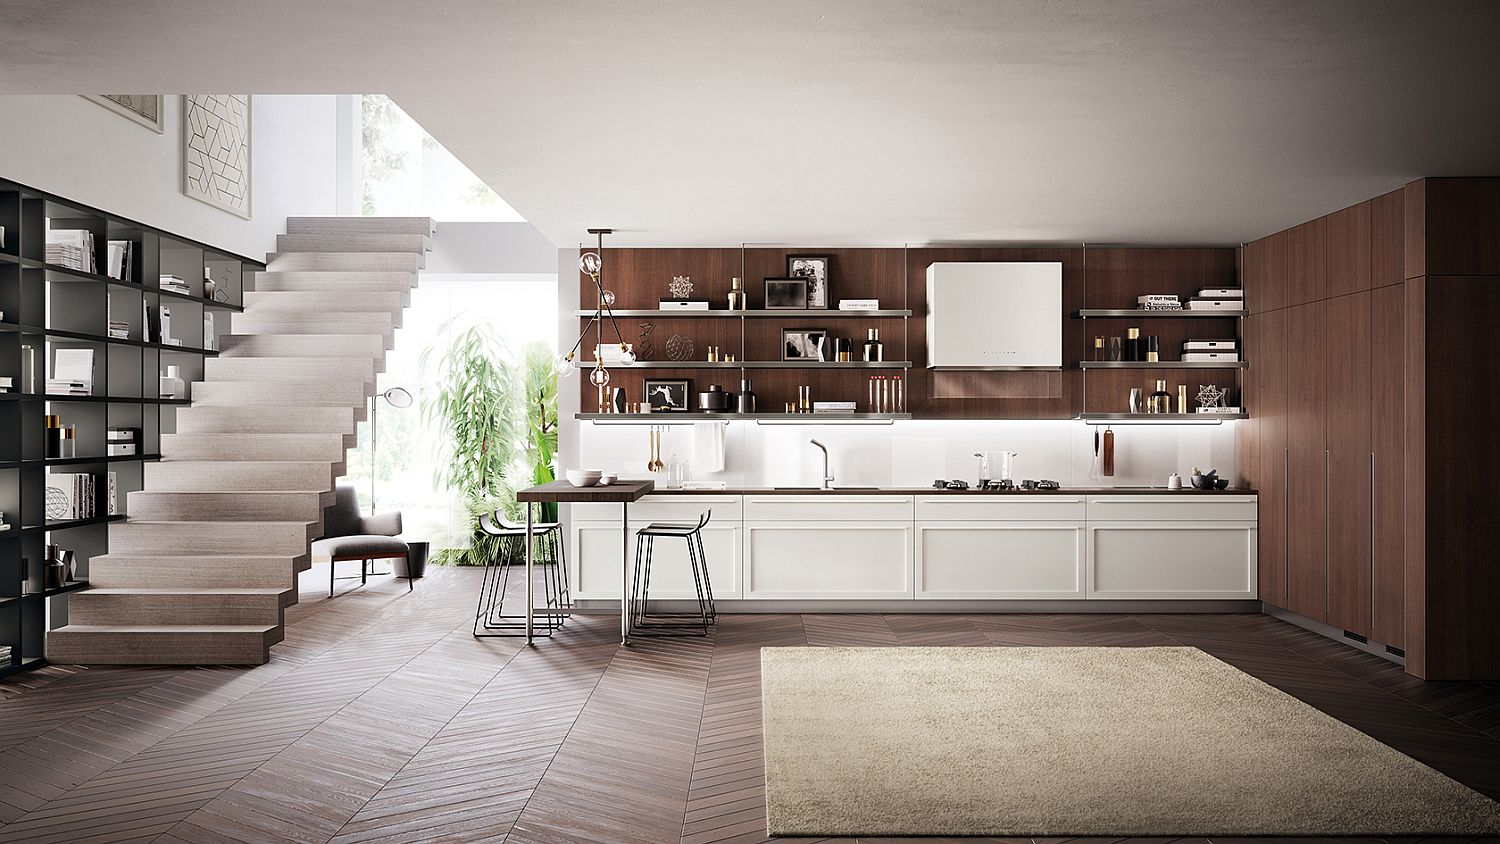 Modern-kitchen-with-breakfast-bench-and-a-lovely-wooden-backsplash